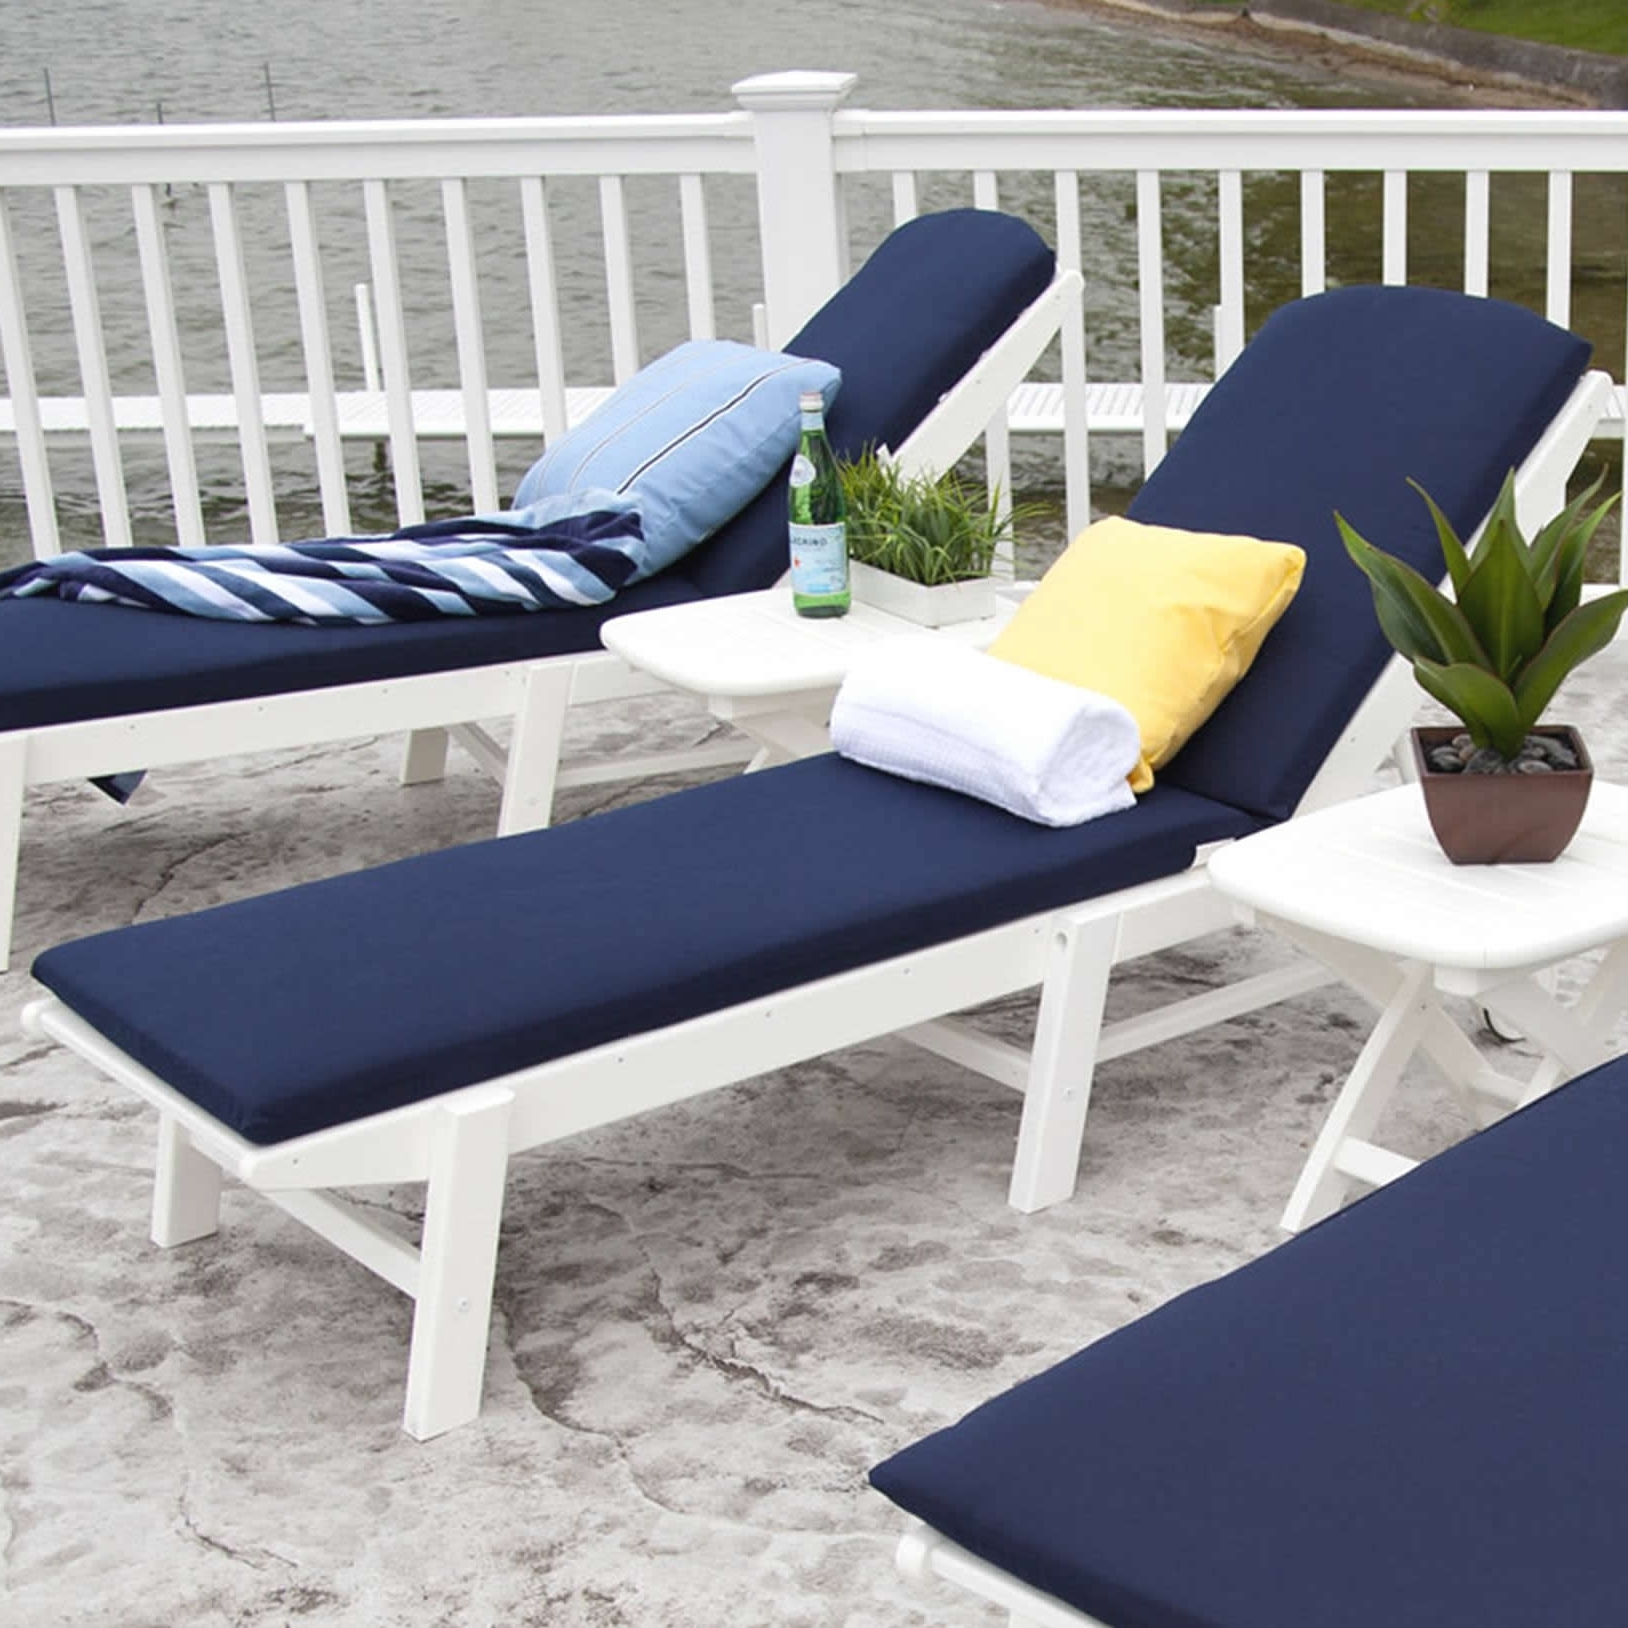 Outdoor Cushions For Chaise Lounge Chairs Within Well Known Polywood Nautical Chaise Lounge Cushions (View 9 of 15)